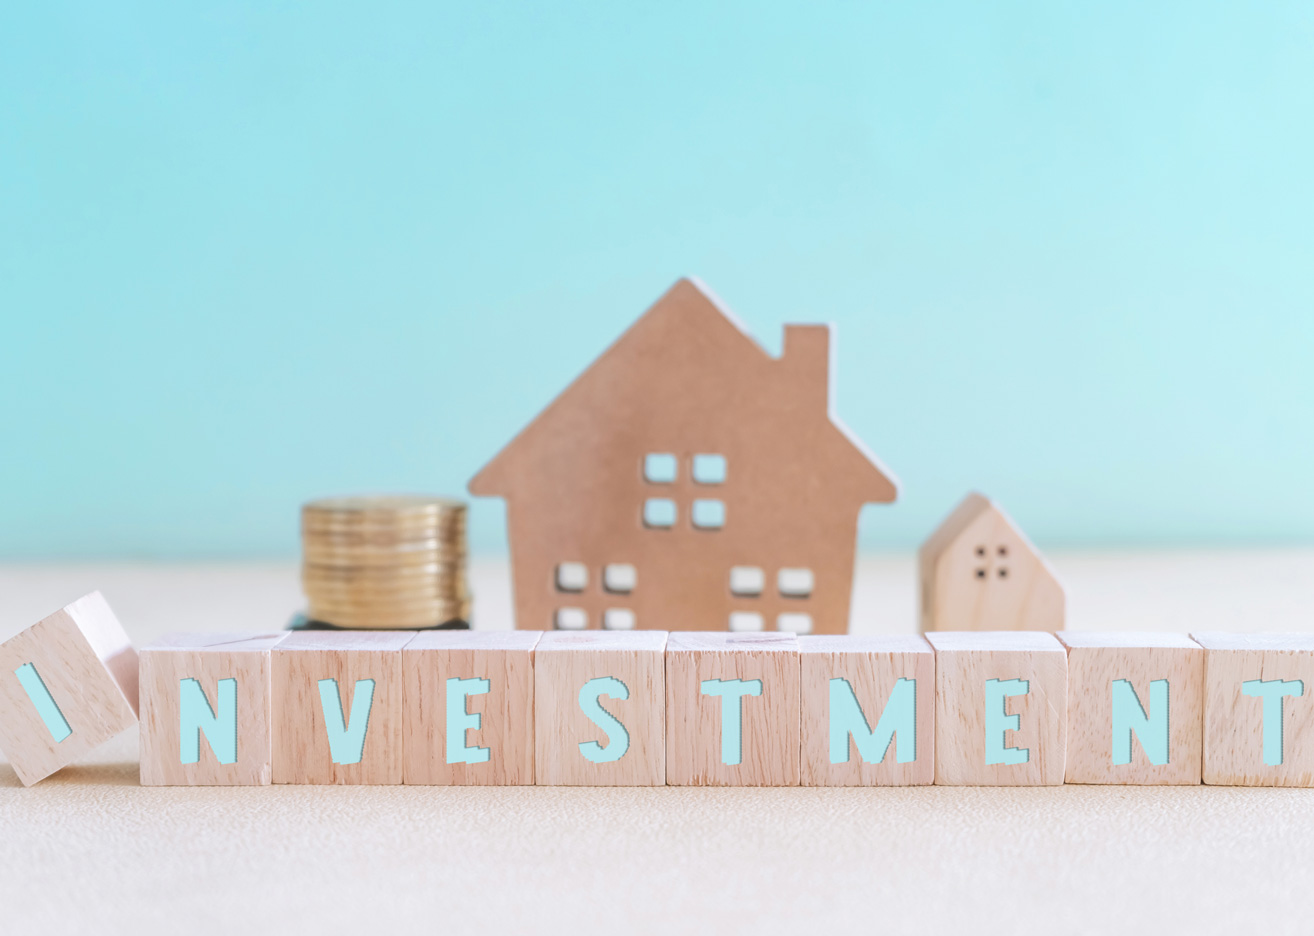 Life Settlement Investments Pros and Cons for Sellers and Buyers